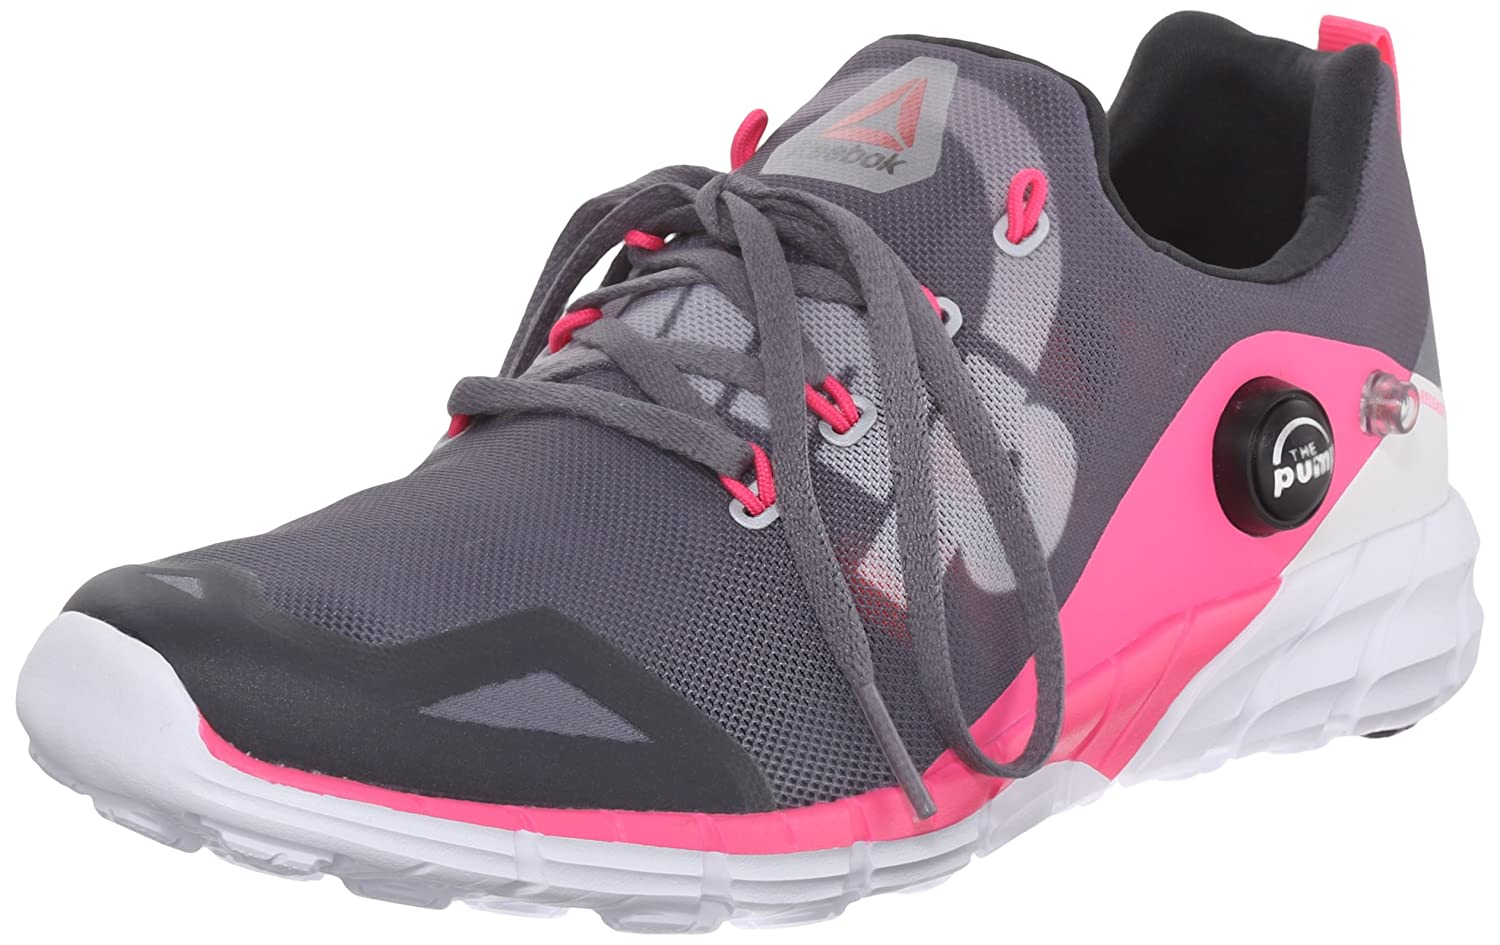 Reebok Women's Zpump Fusion 2.0 Running Shoe B010Y5YMWW 8.5 B(M) US|Alloy/Tin Grey/Solar Pink/Coal/White